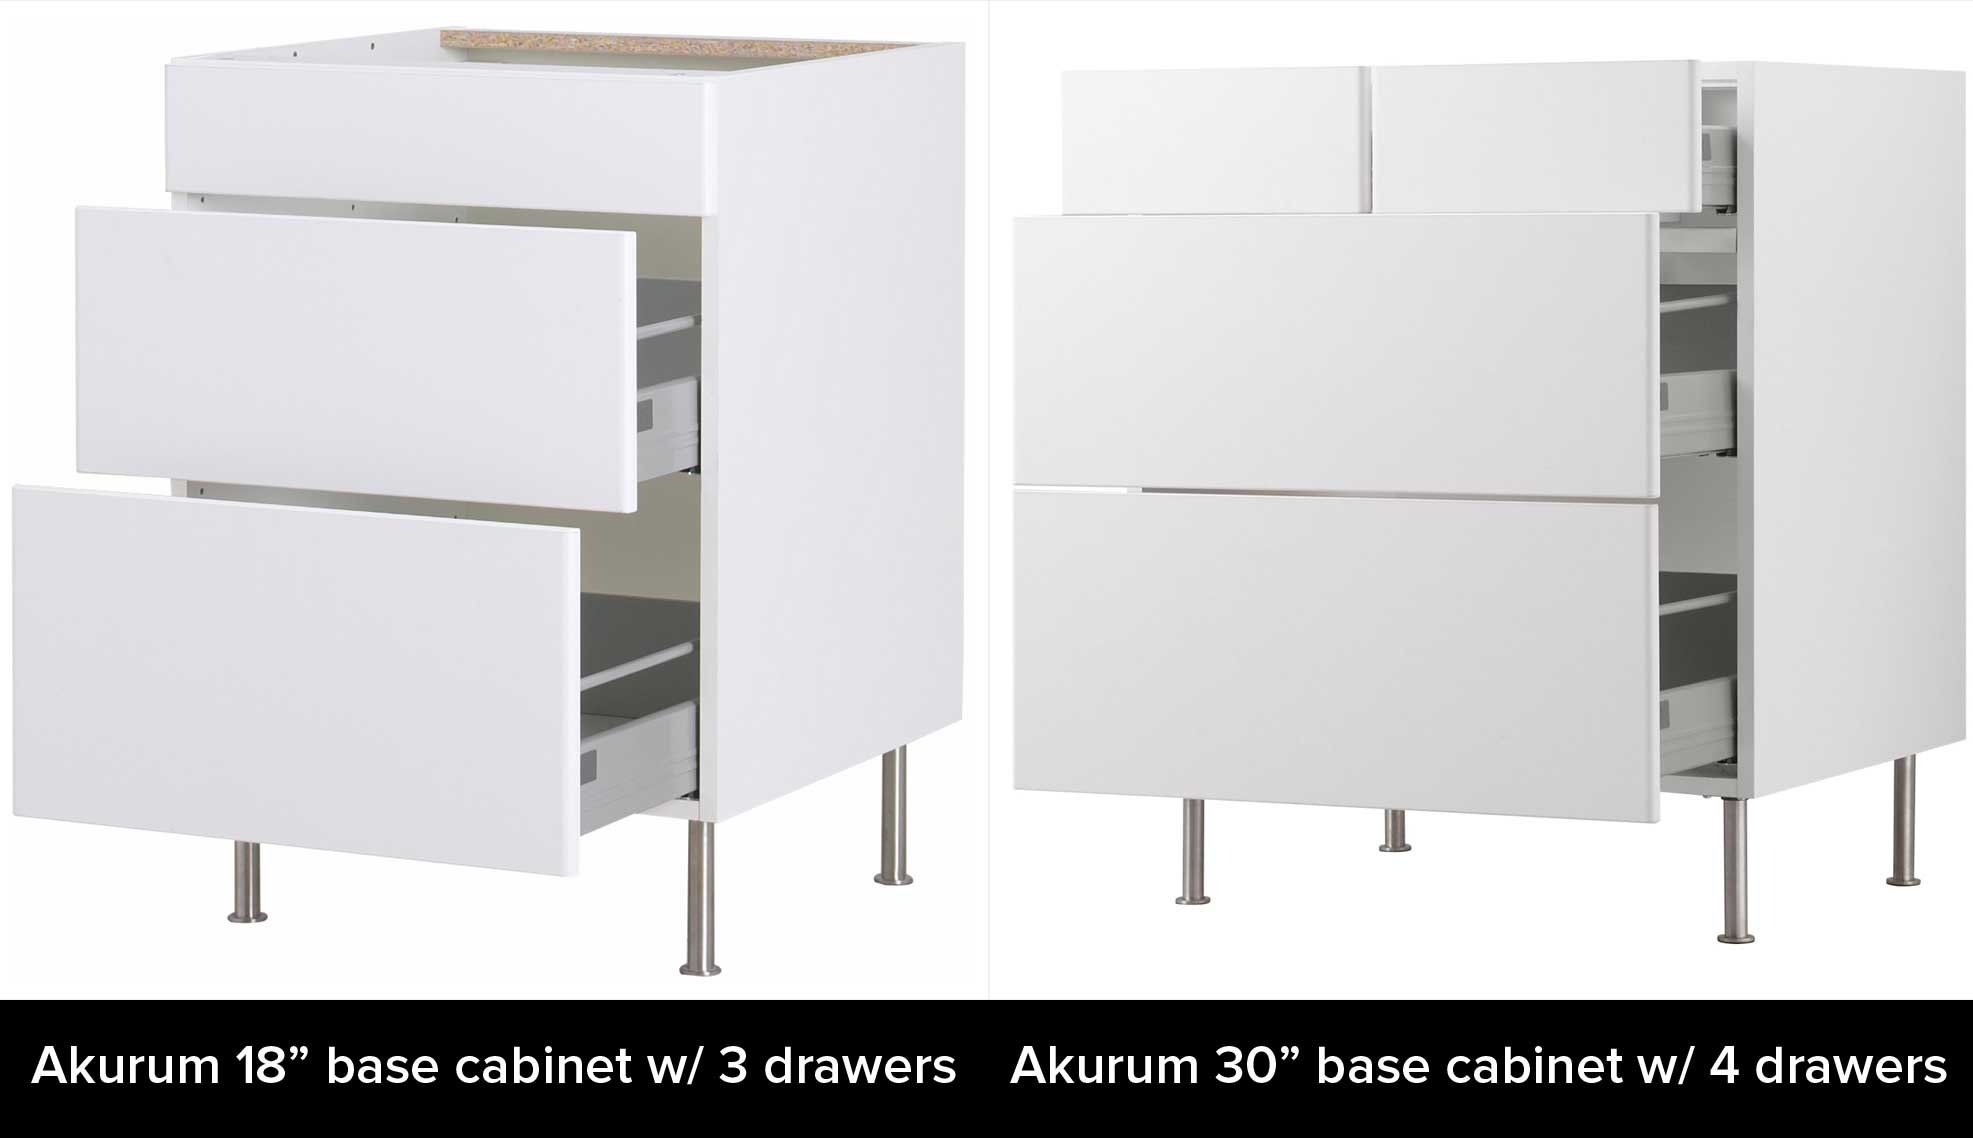 IKEA's AKURUM vs  SEKTION Cabinets: What's the Difference